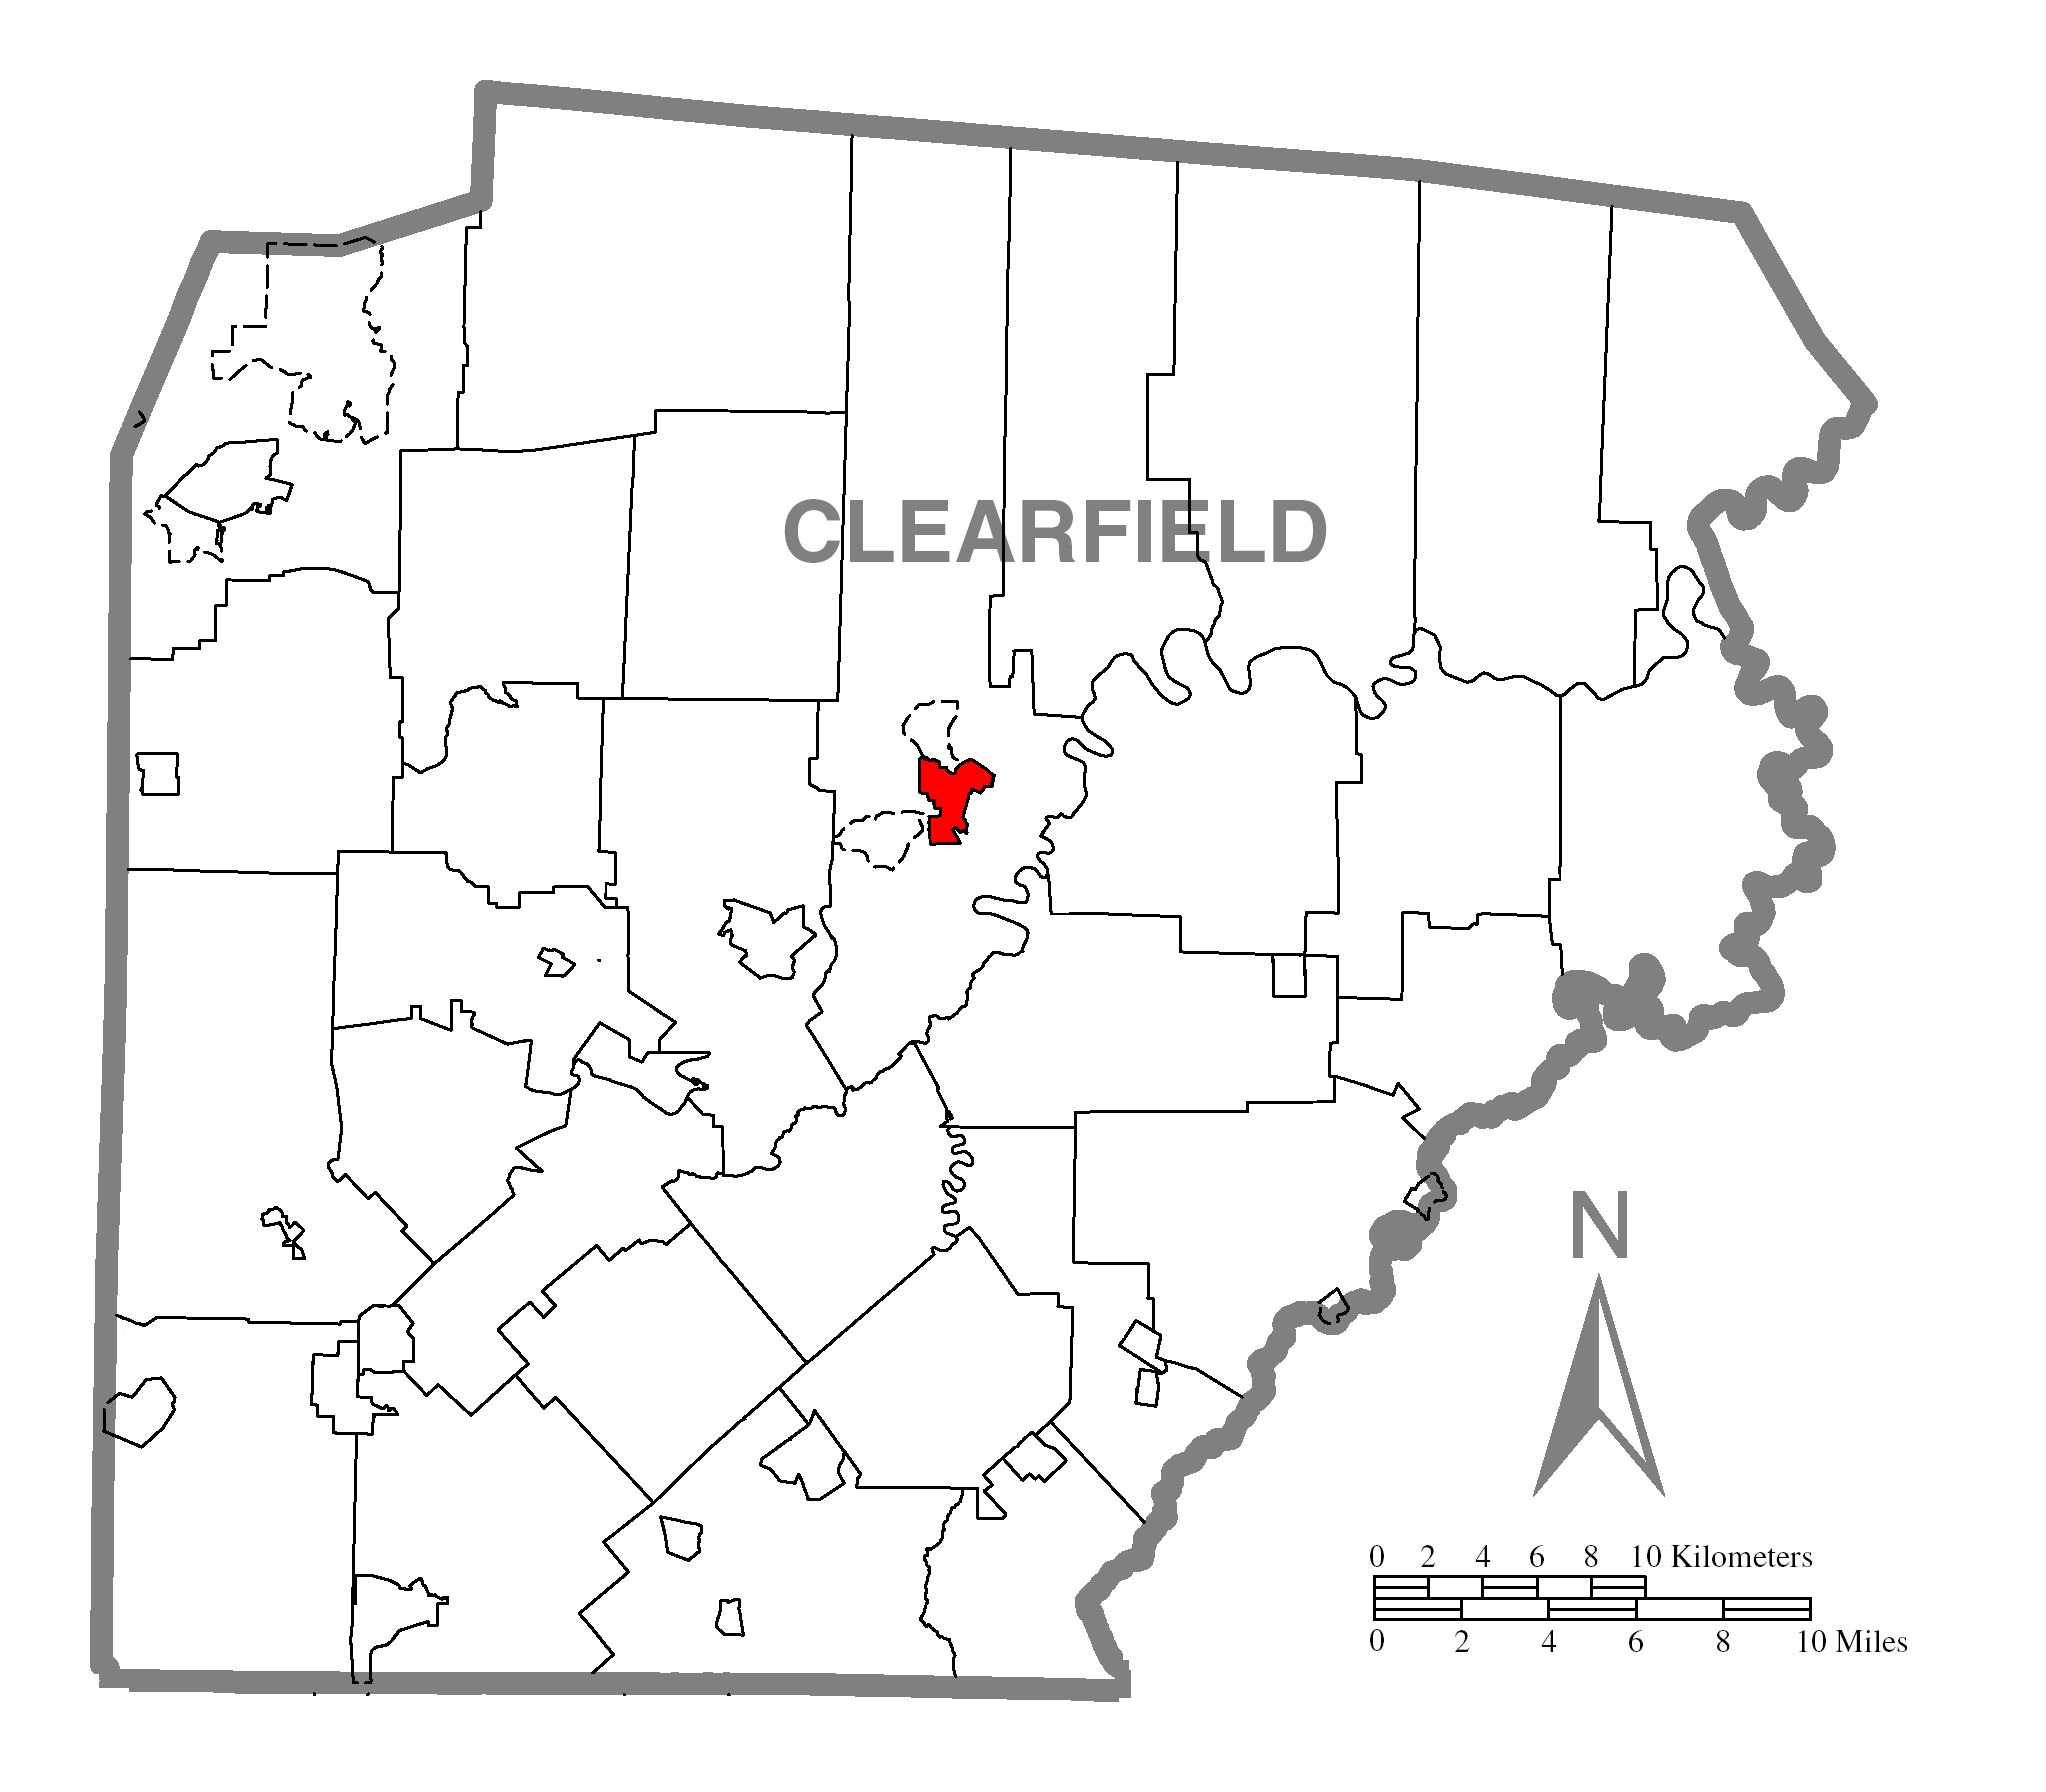 Map Of Clearfieldc Clearfield Countyc Pennsylvania Highlighted